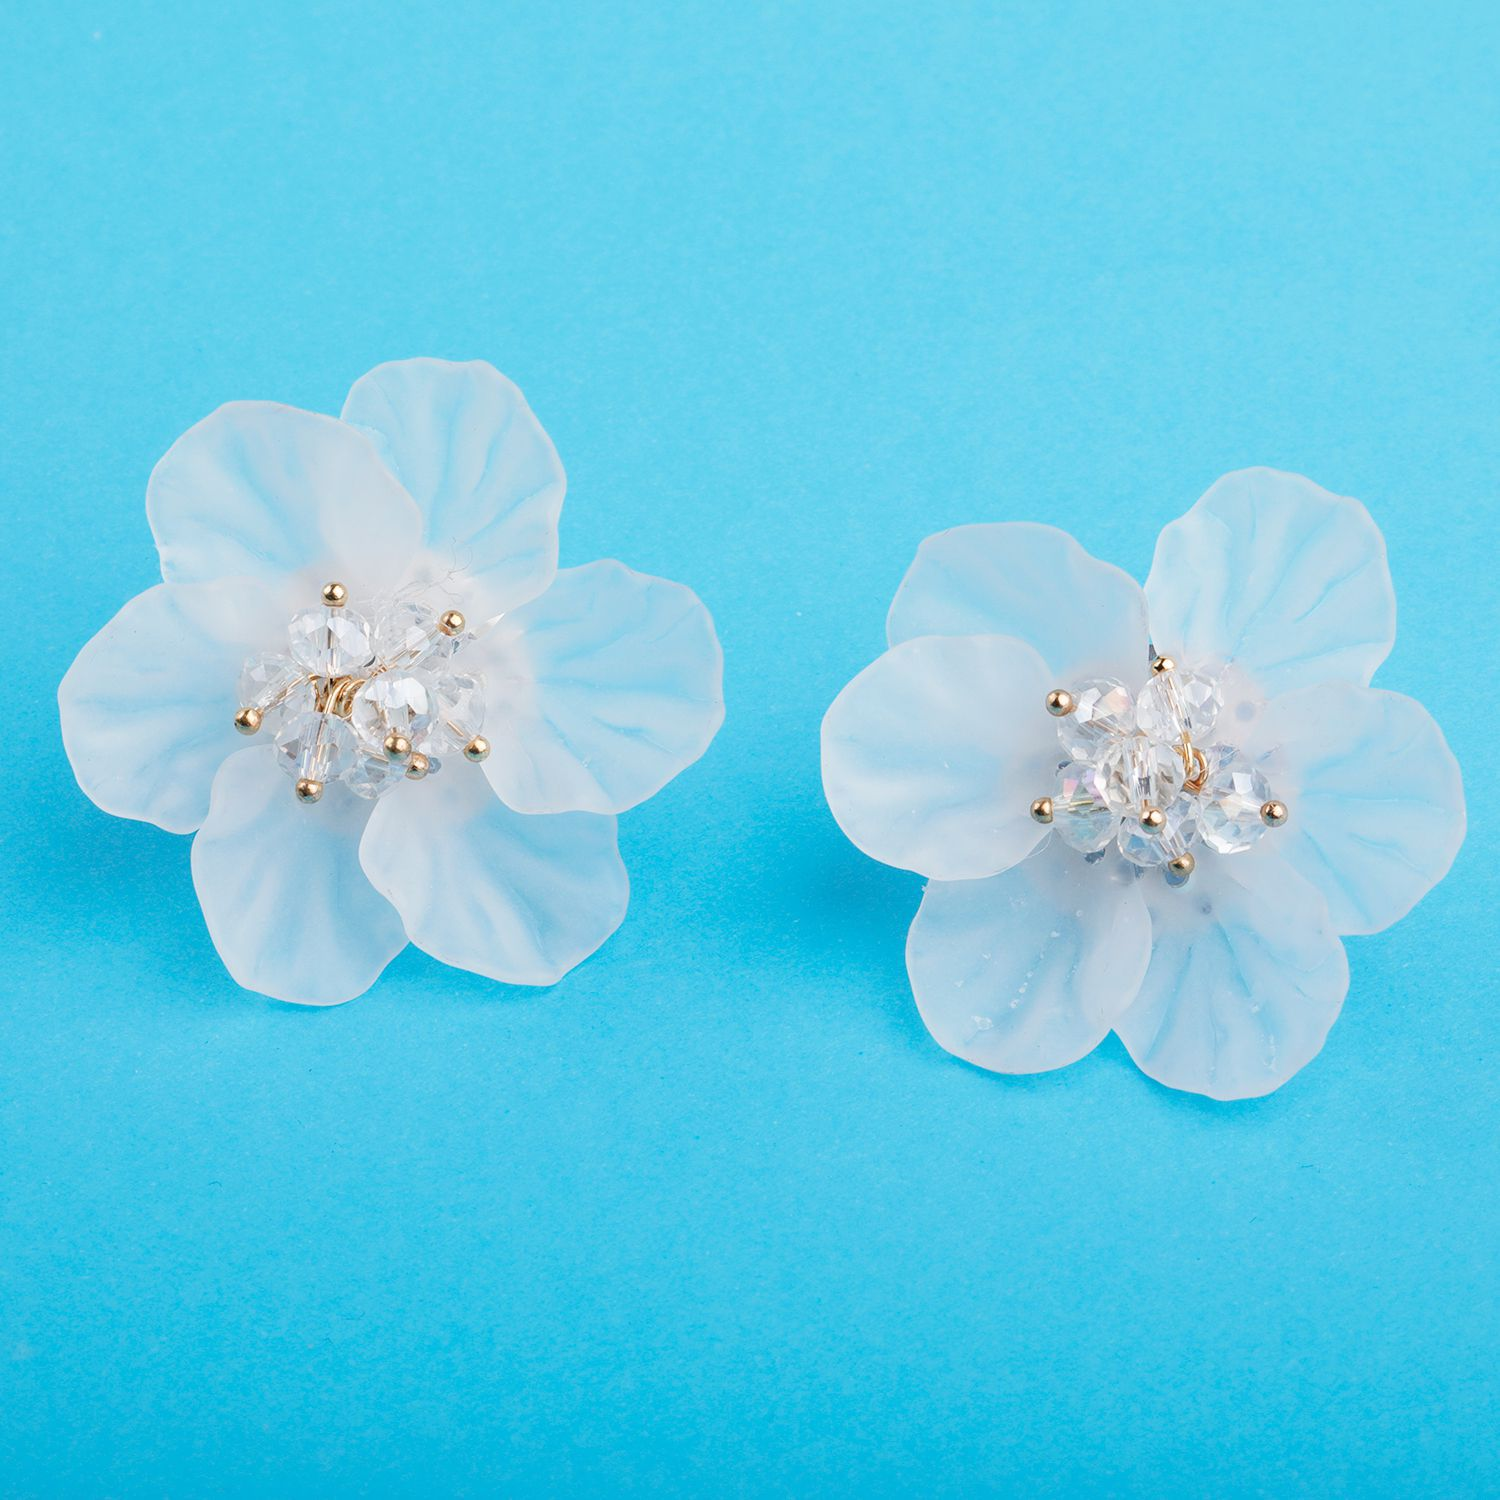 Silver Shine Premium White Attractive Floral Stud Earring With Beads For Girls And Women